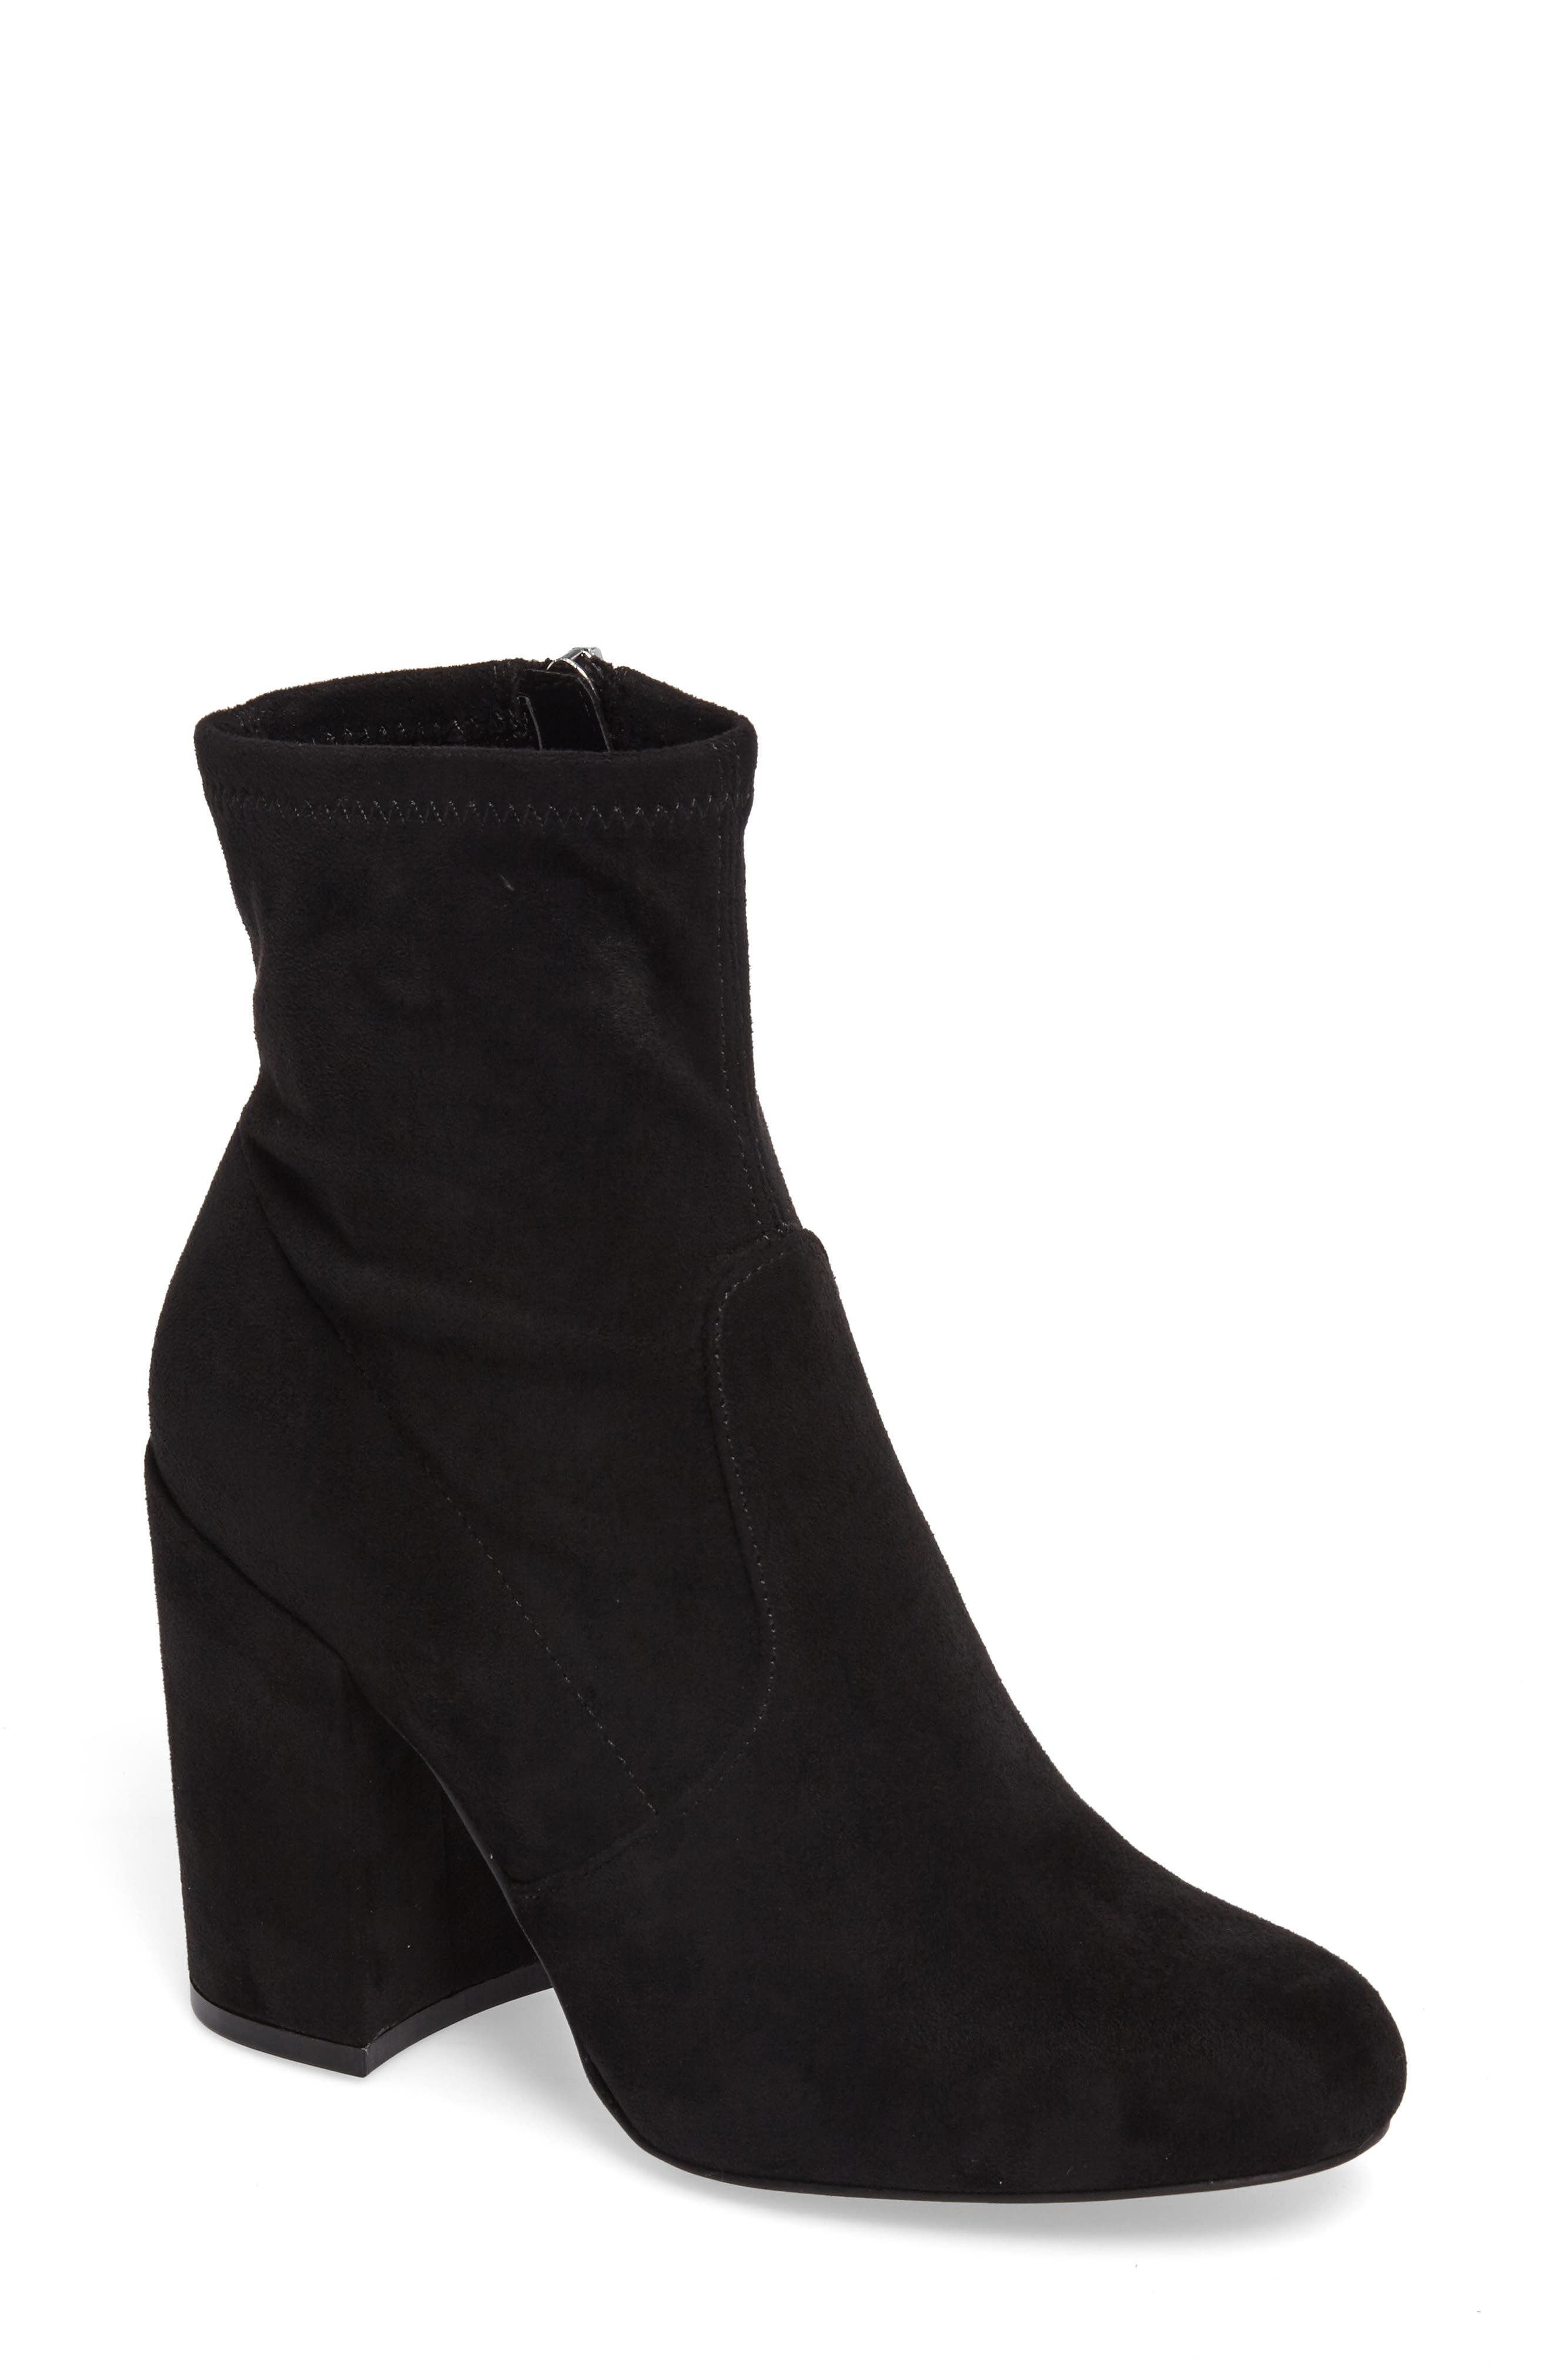 Gaze Bootie,                             Main thumbnail 1, color,                             Black Suede